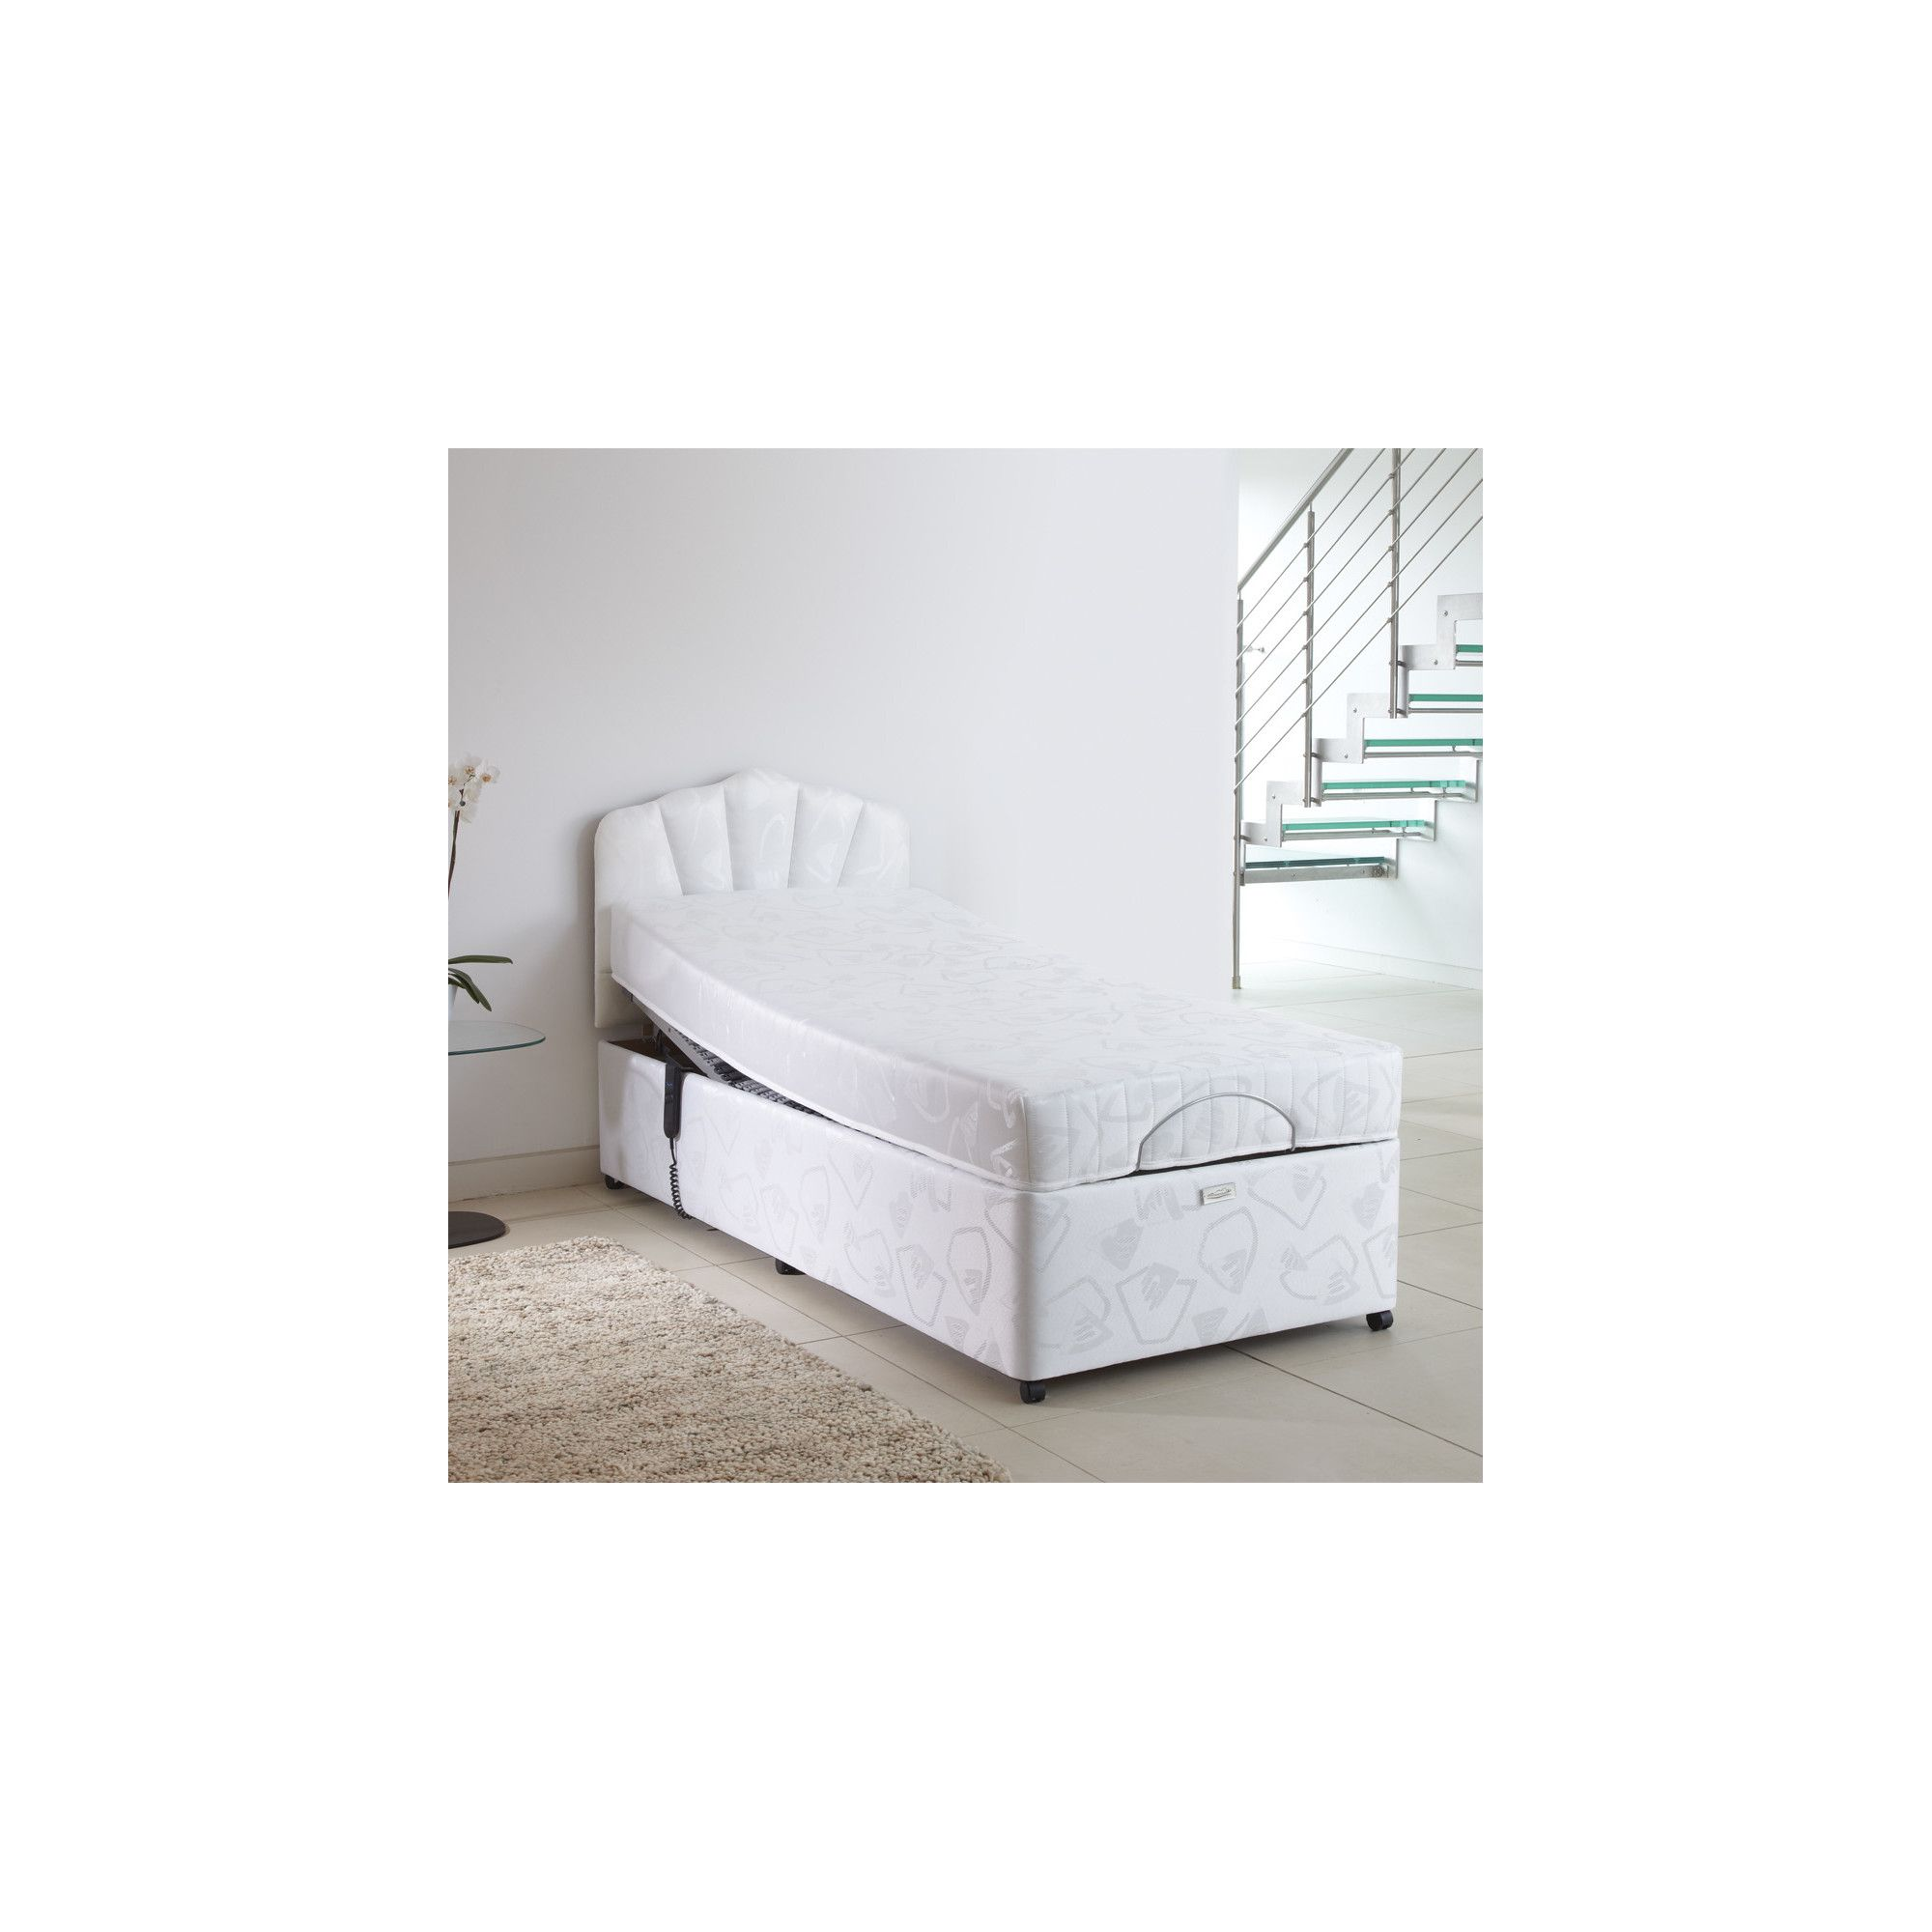 Bodyease Adjustable Deep Base Set with Electro Neptune Mattress - Extra Small Single - 2 Drawers at Tesco Direct